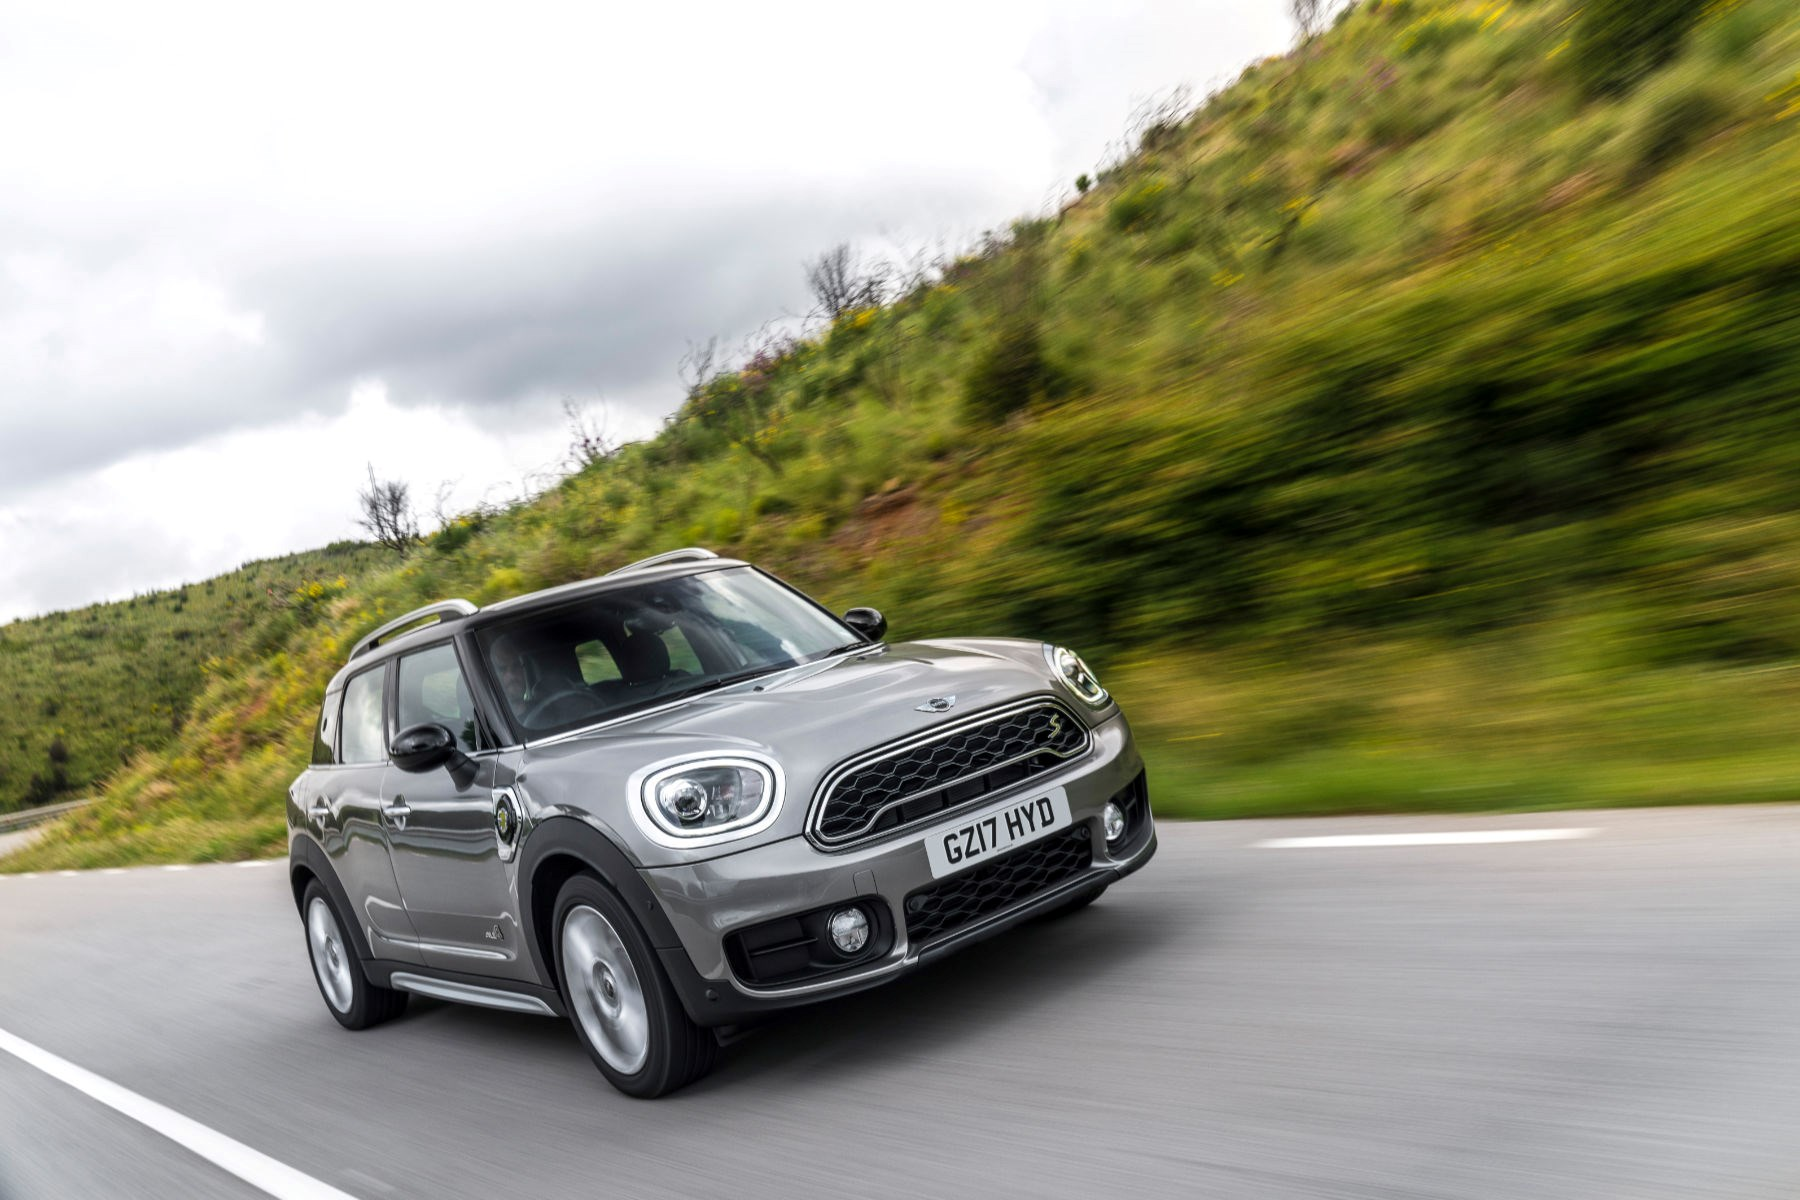 2020 Mini Countryman Hybrid